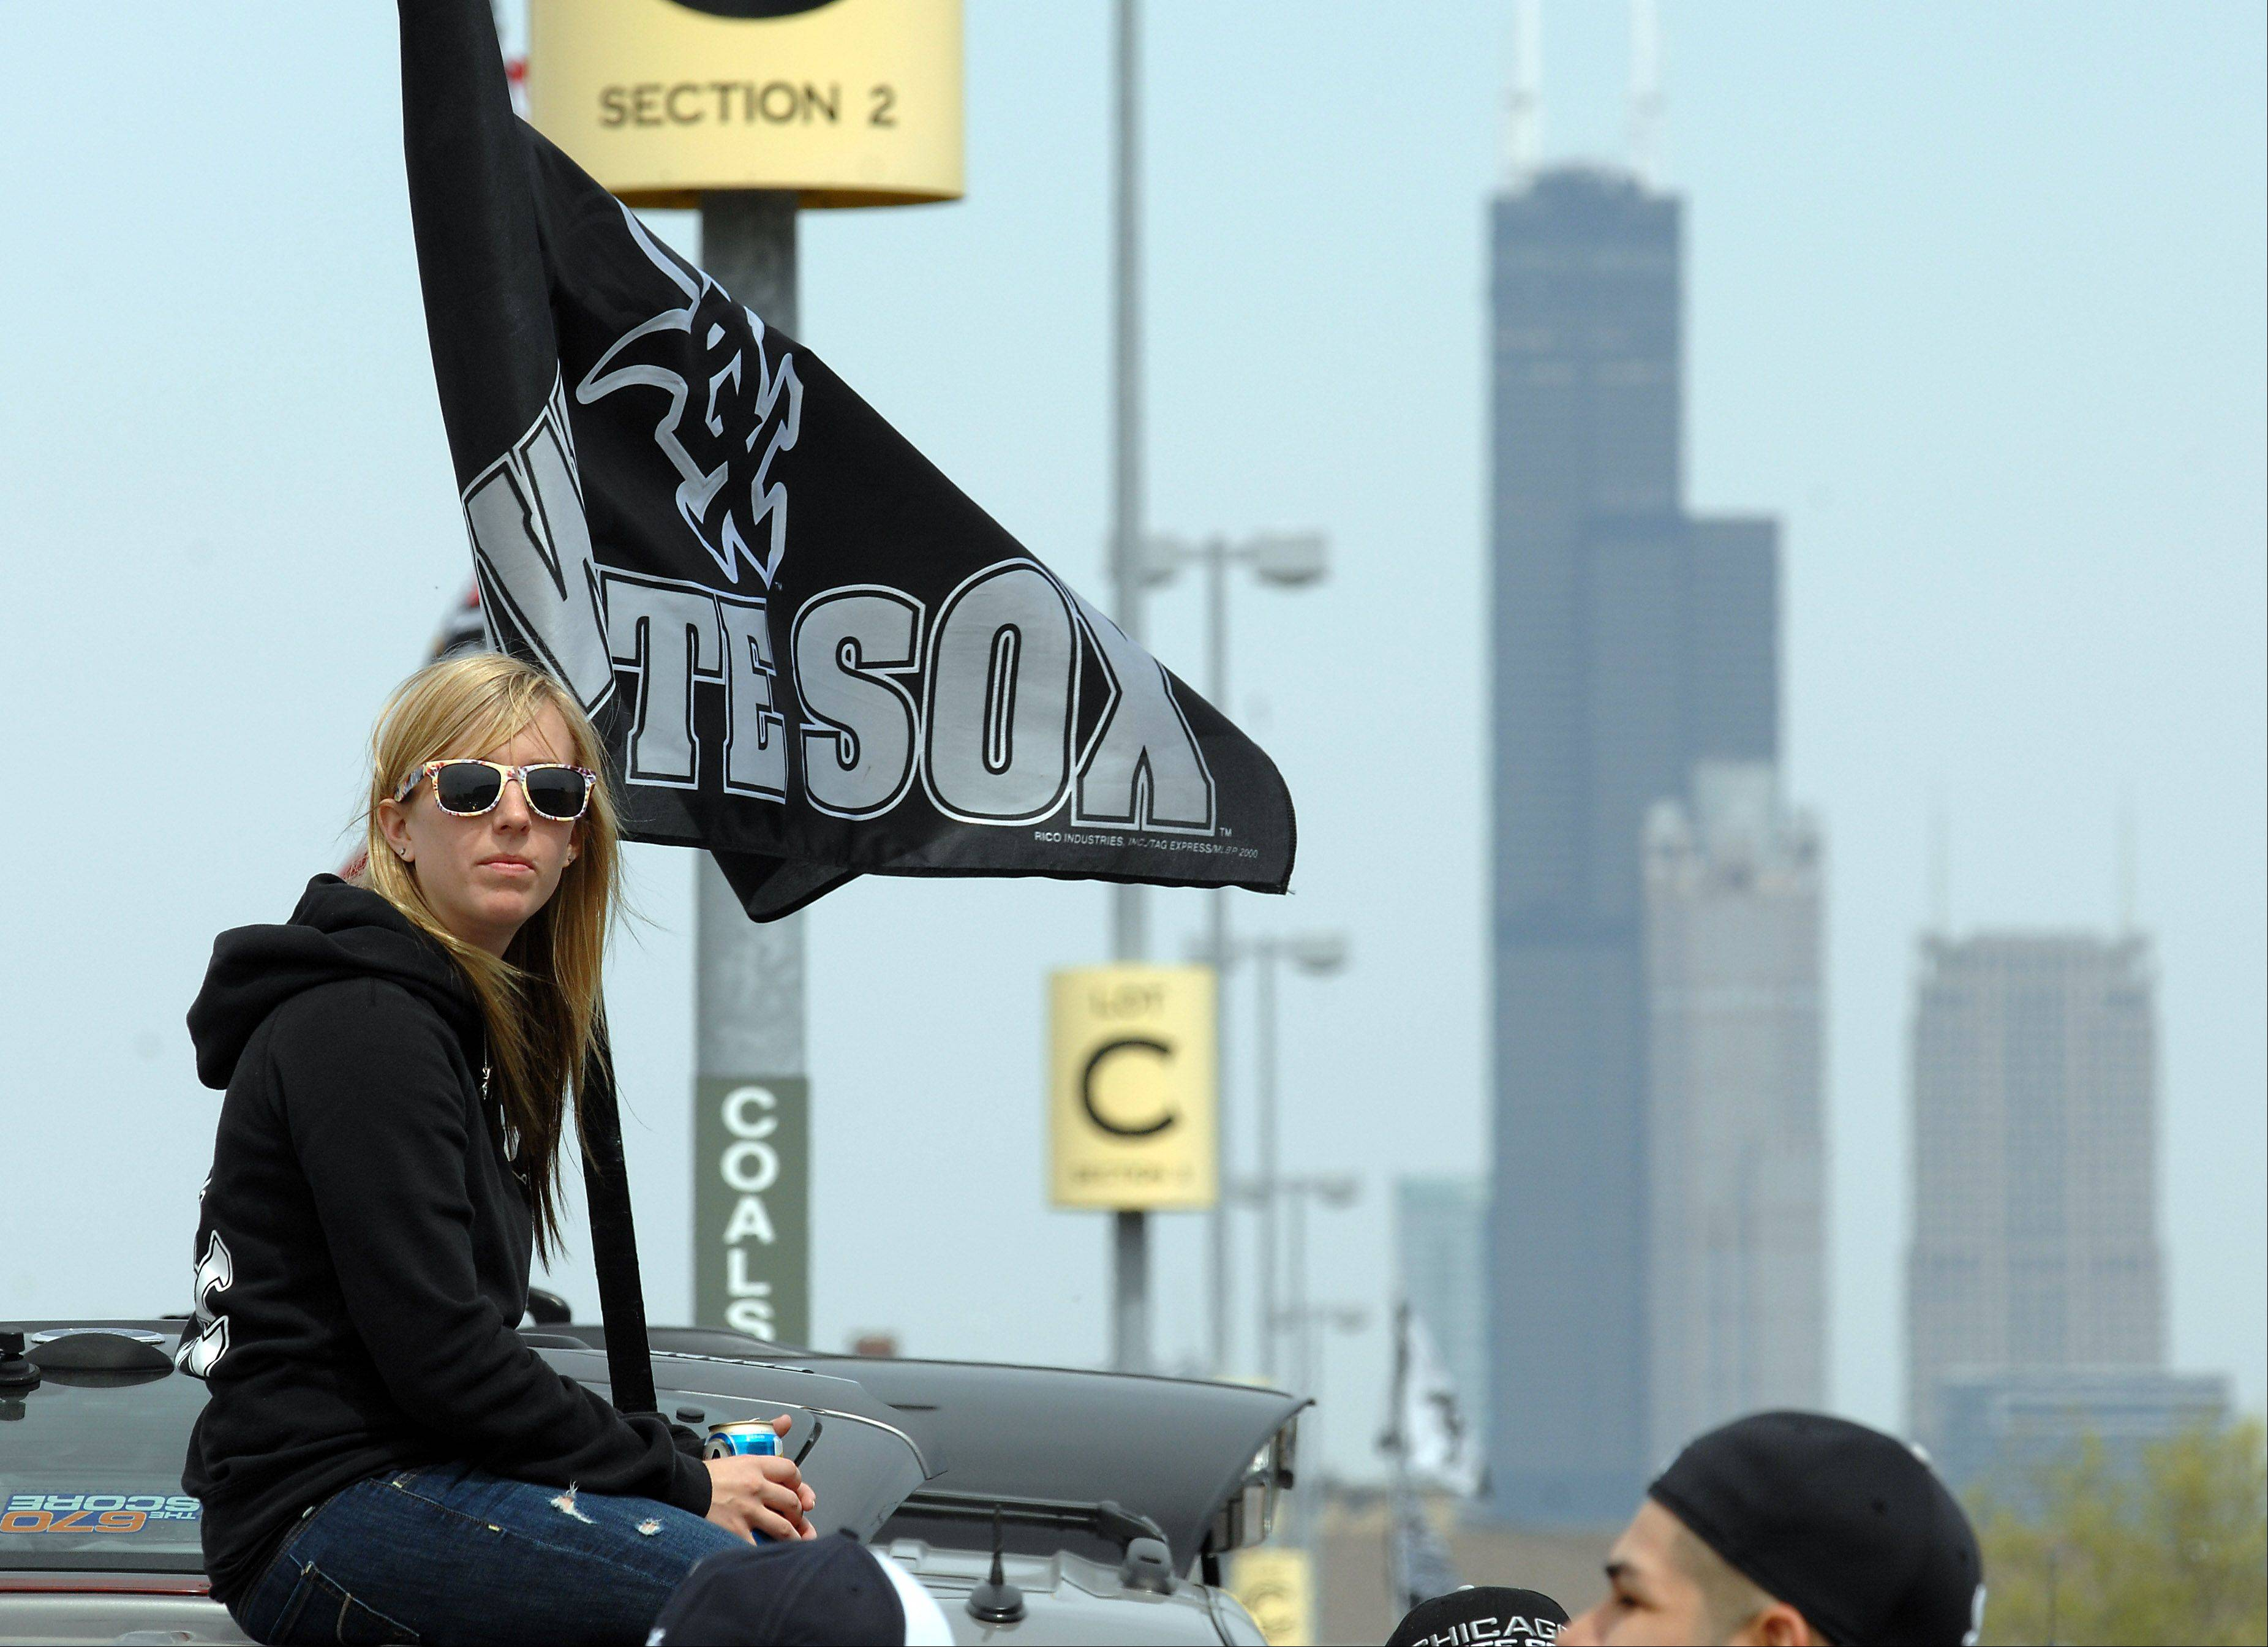 White Sox fan Magan Little of Lockport tailgates in the parking lot.